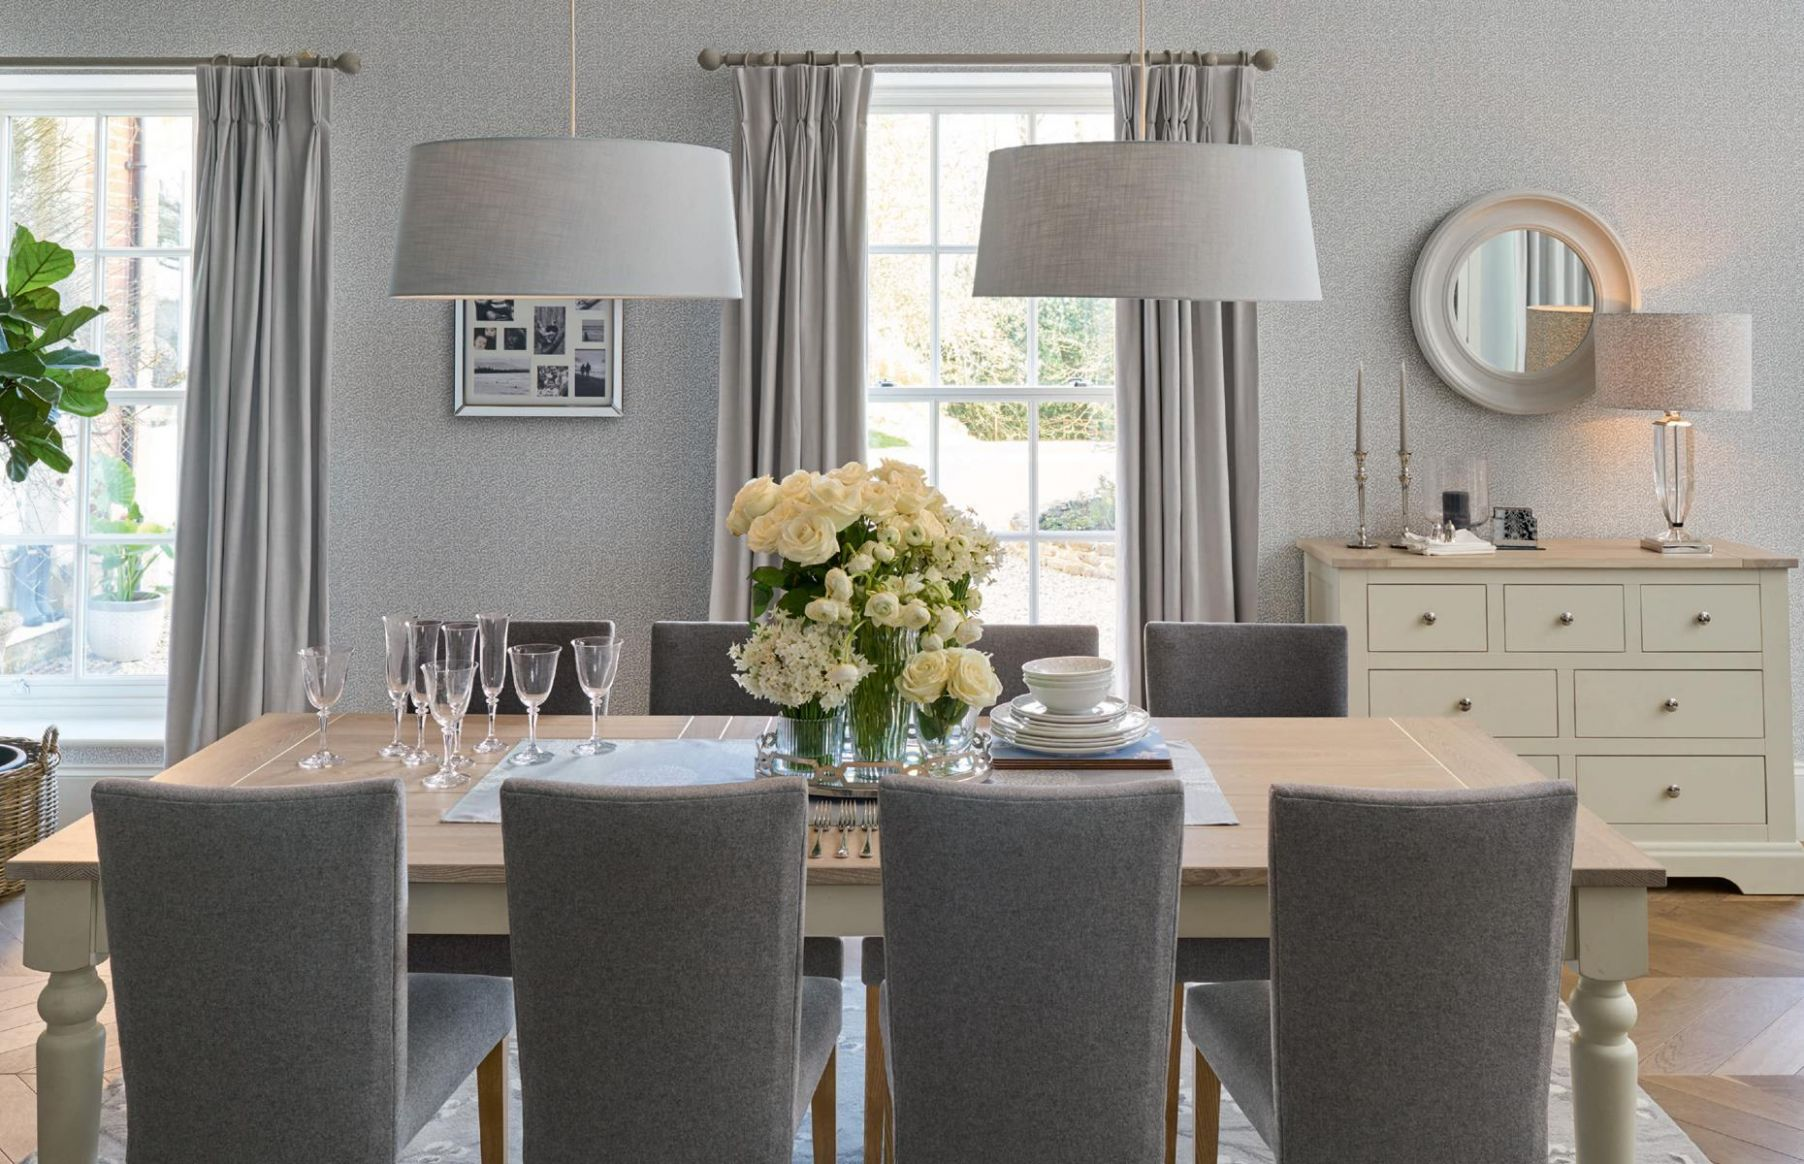 10 dining room ideas to suit every style | loveproperty.com